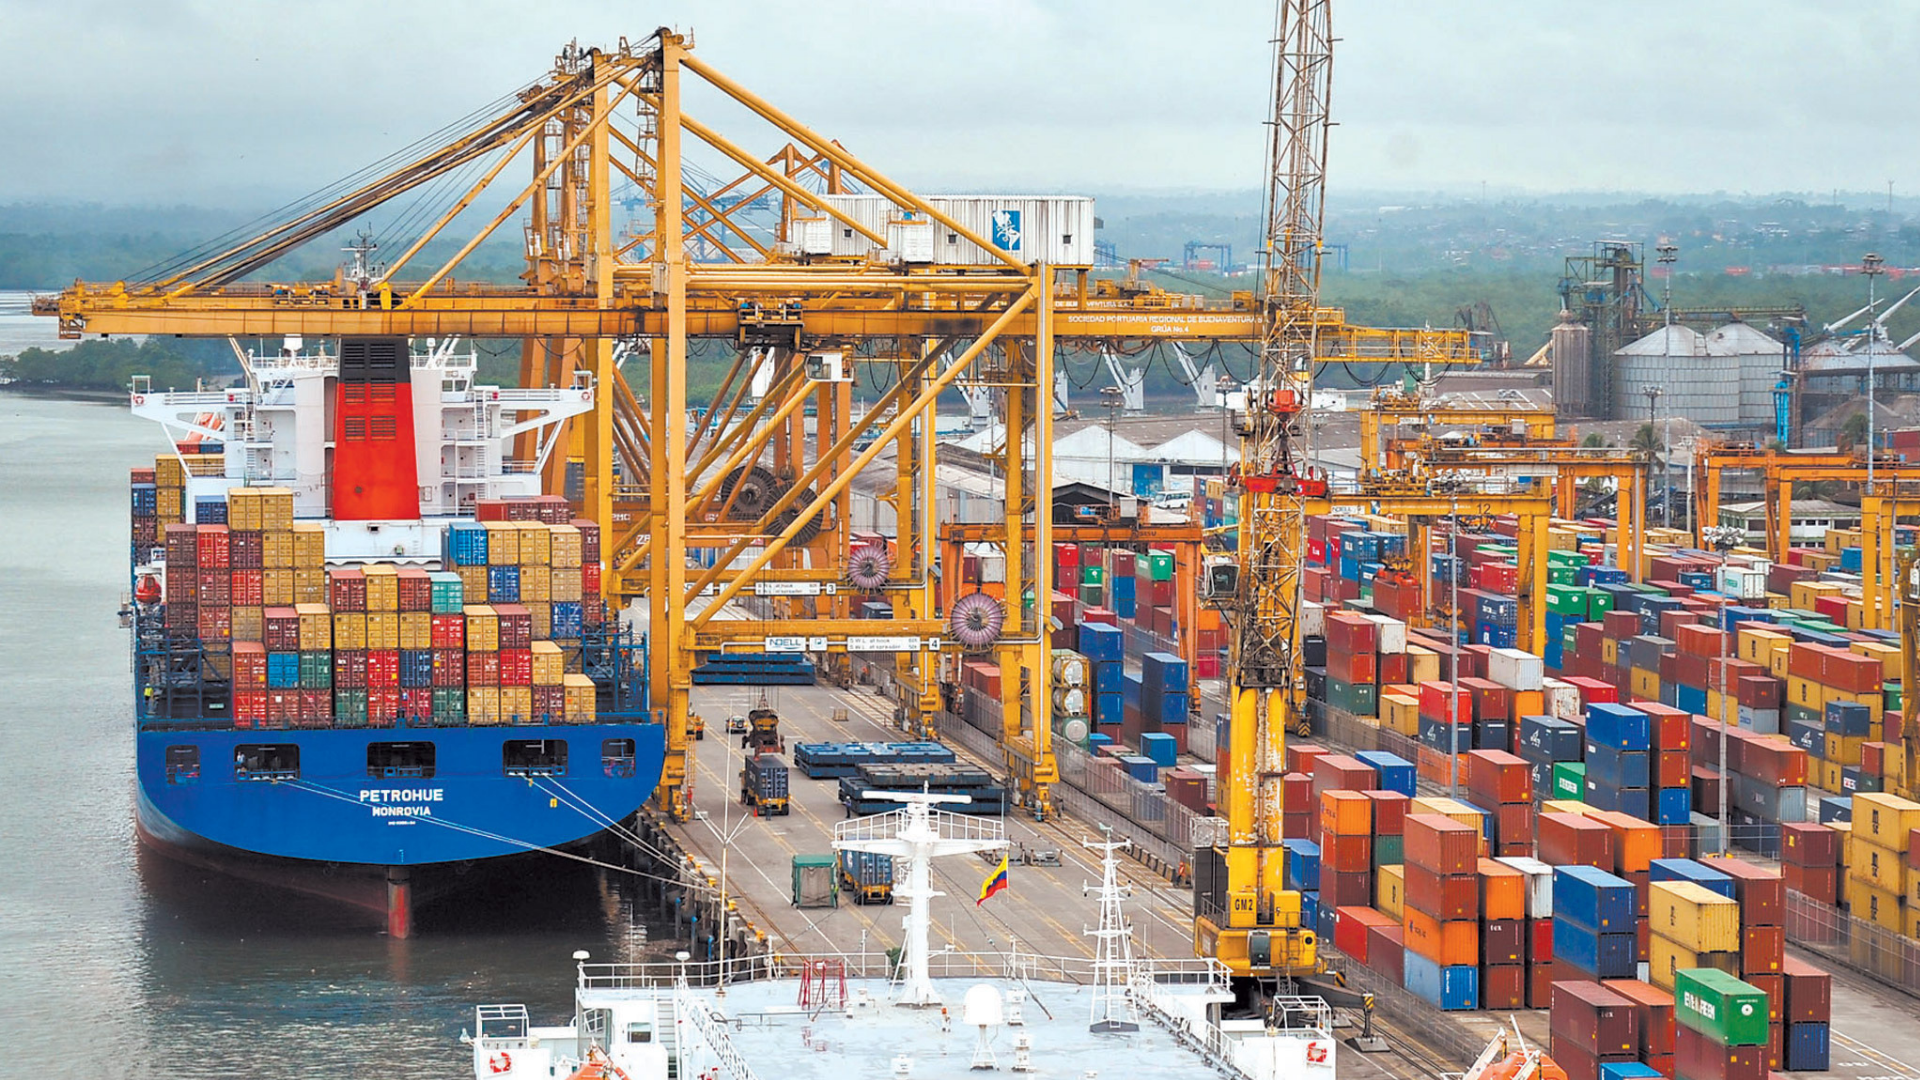 The role of ports in the global economy